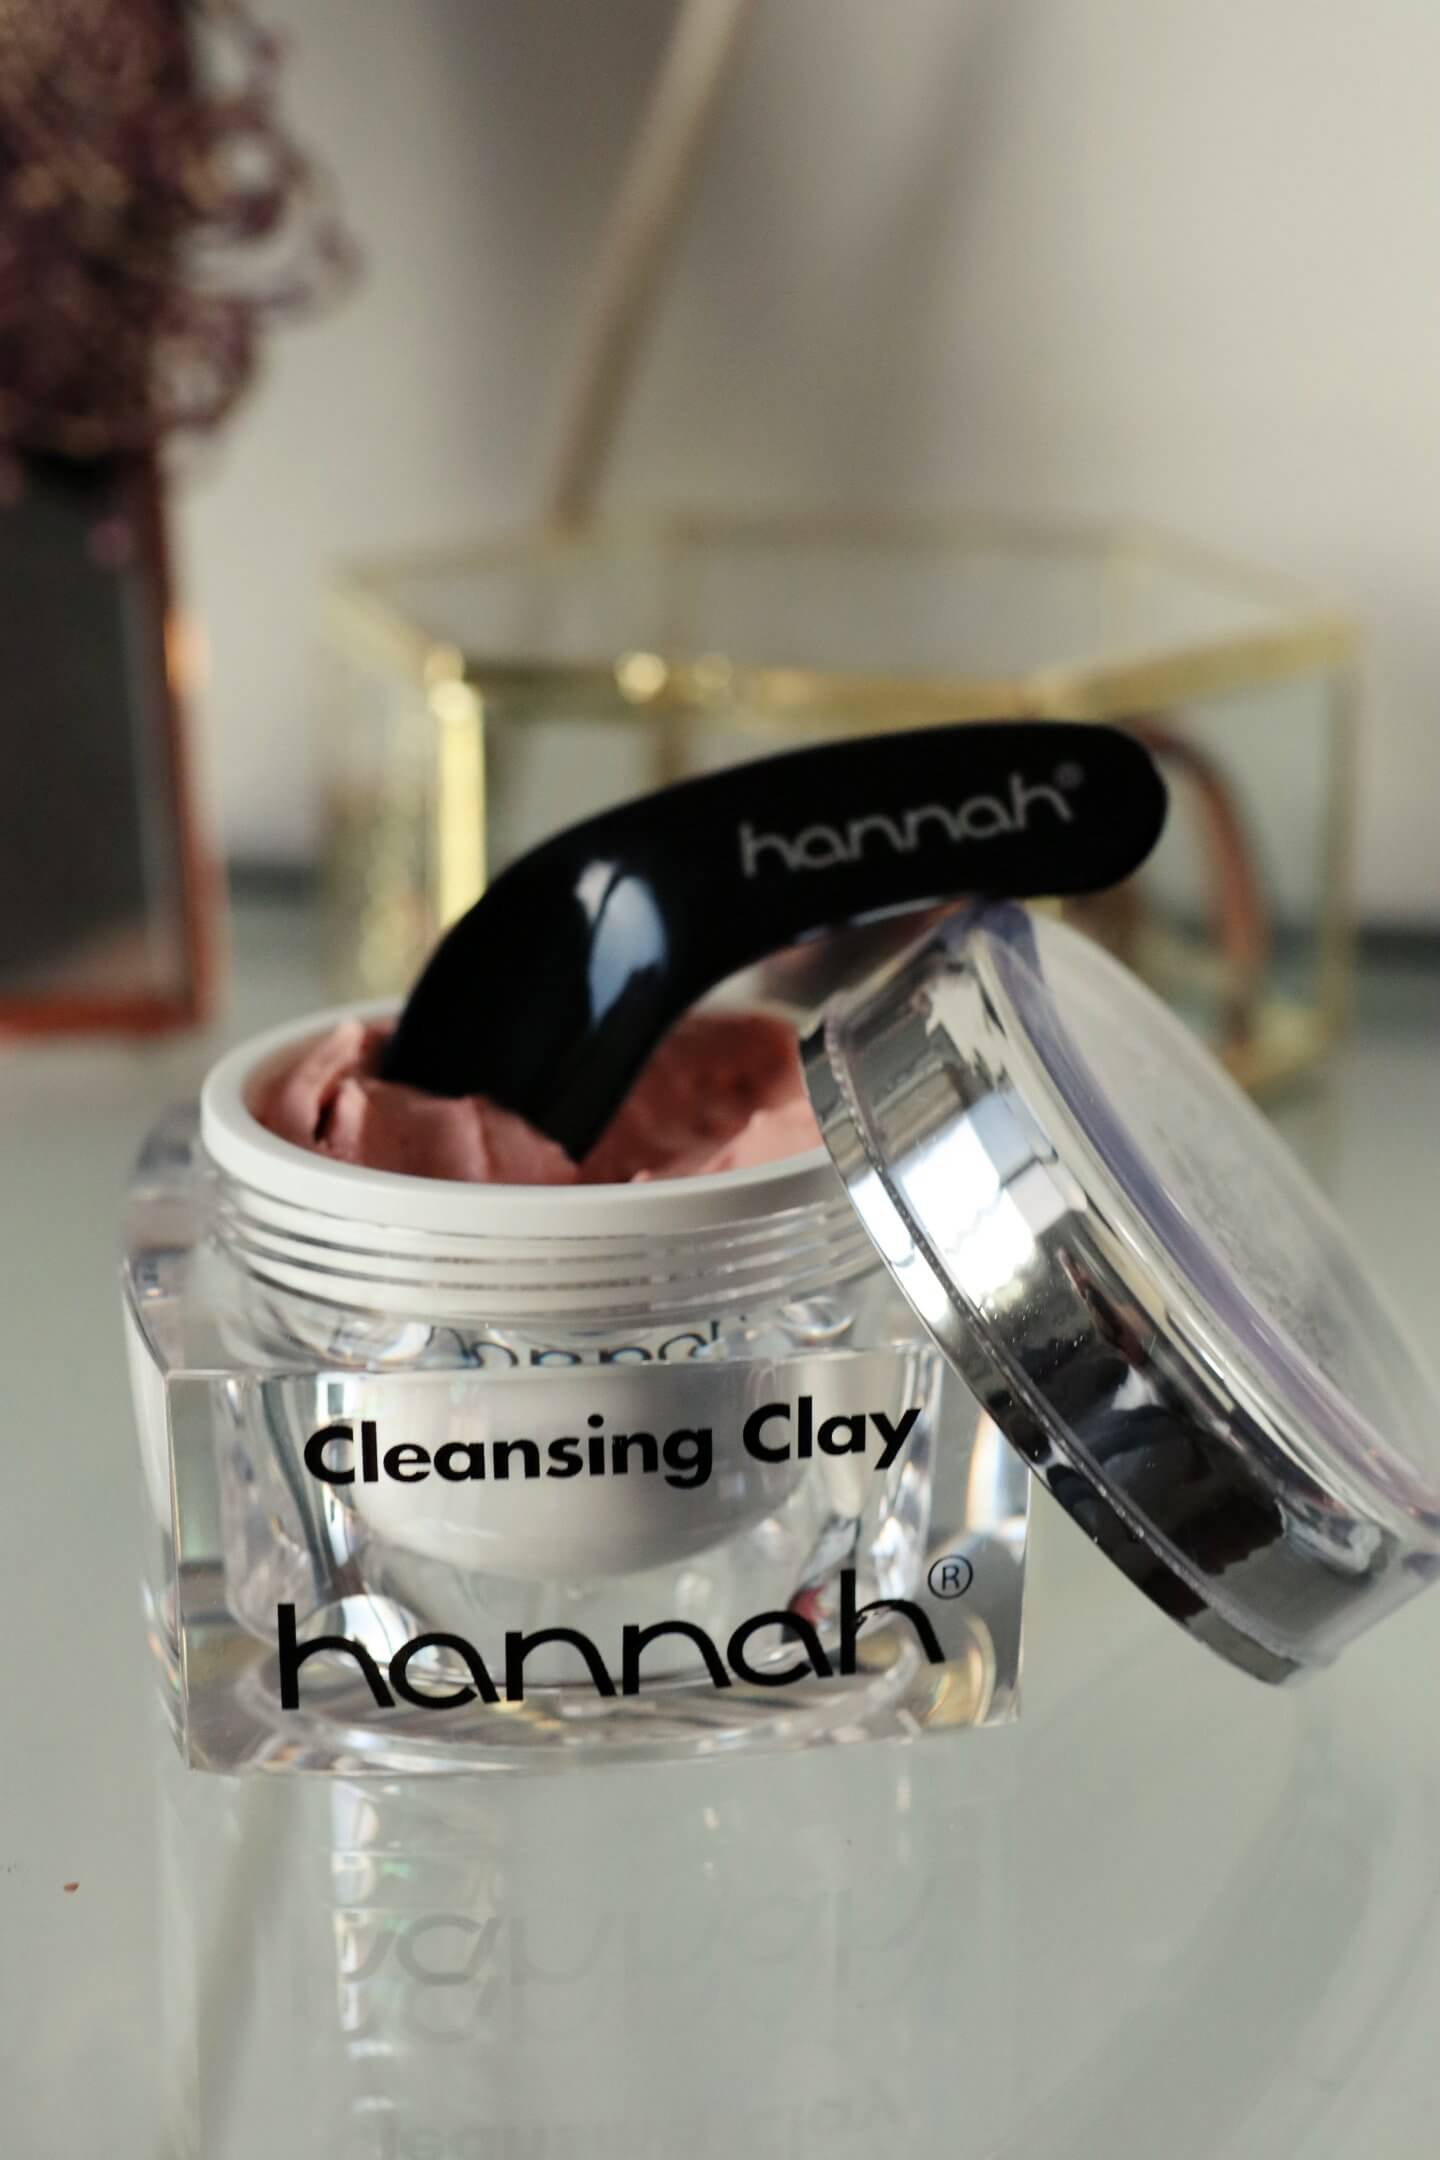 review of the new Hannah Huidcoach products. including the cleansing clay, brilliant touch, touch of silk and touch of colour.